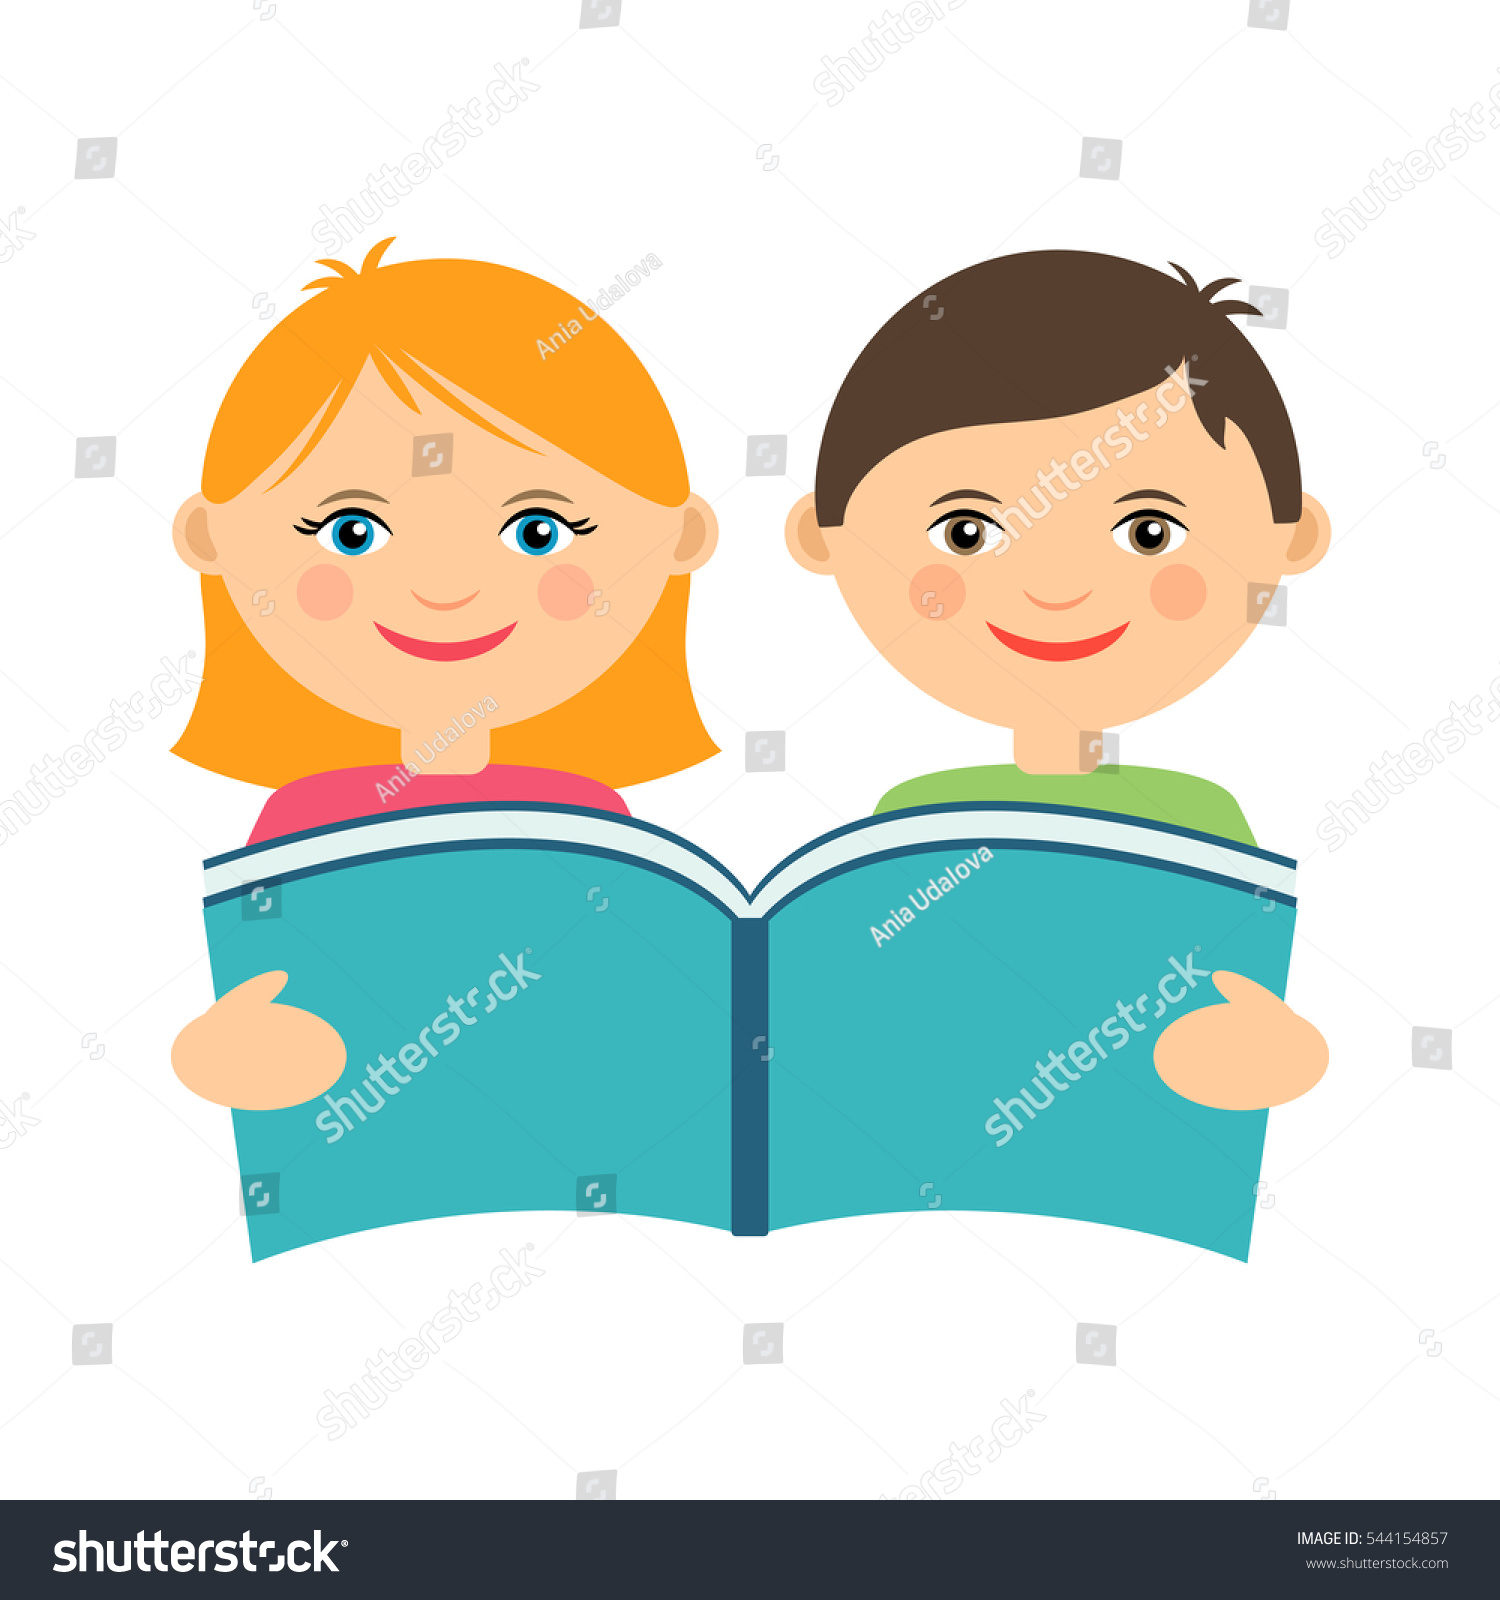 Vector Illustration Smiling Kids Reading Book Stock Vector ...